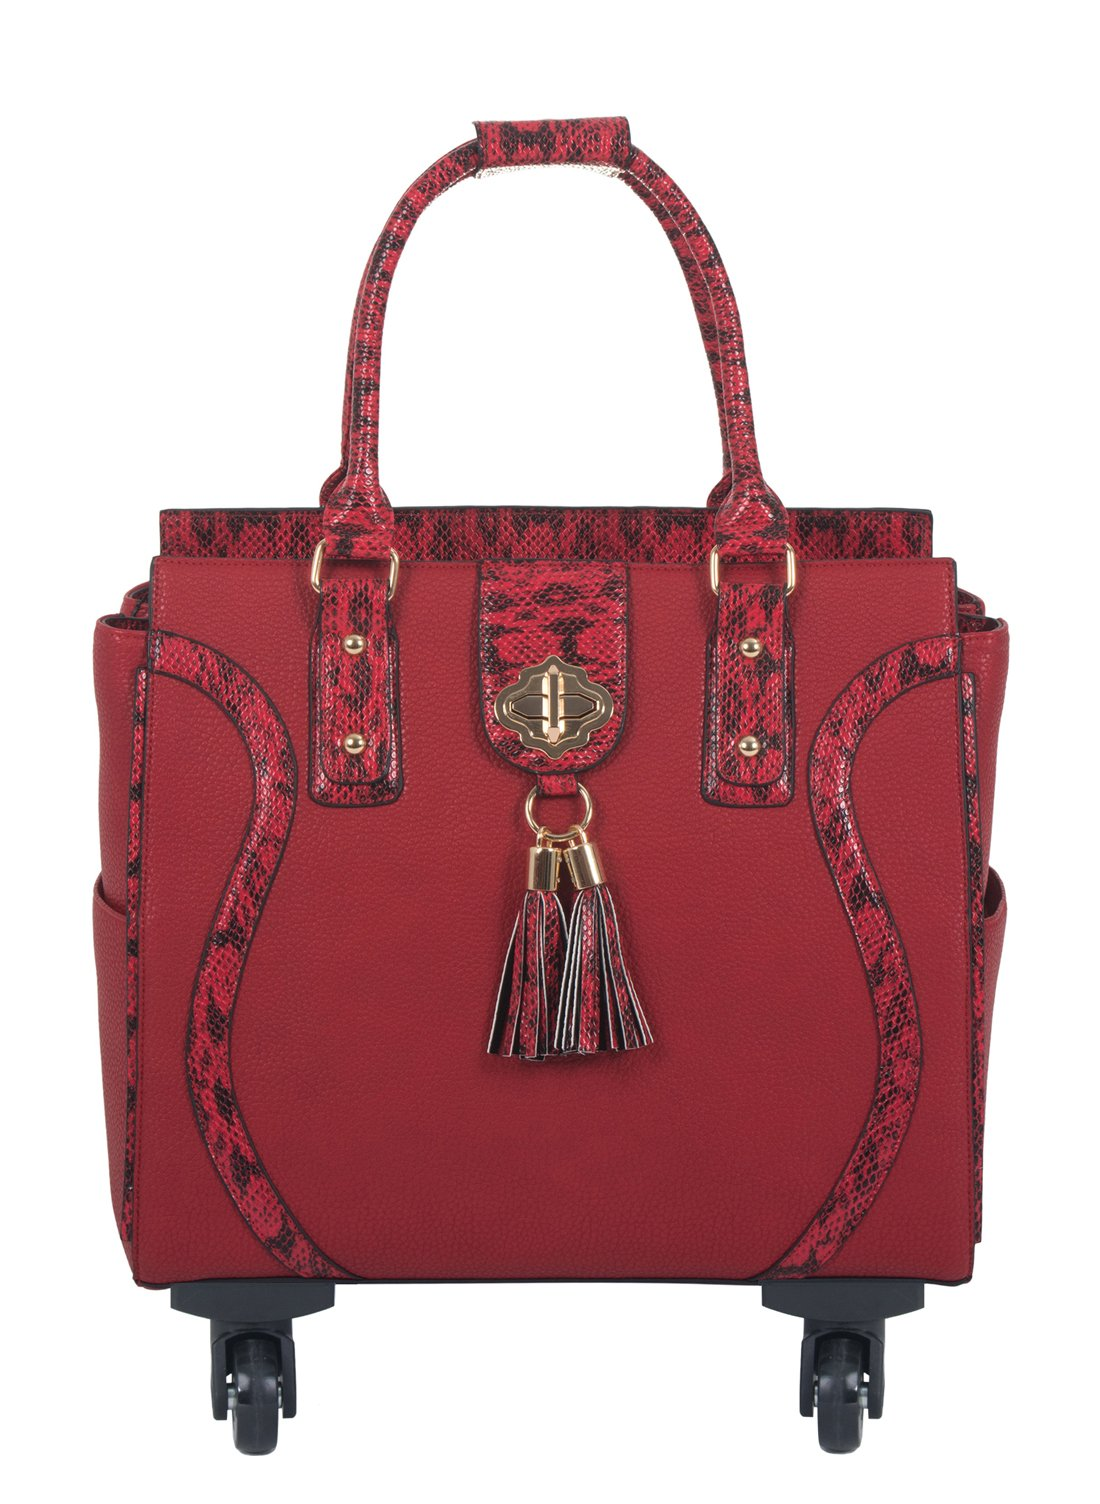 ''THE SEDONA'' Red & Python Computer iPad, Laptop Tablet Rolling Tote Bag Briefcase Carryall Bag With Spinner Wheels